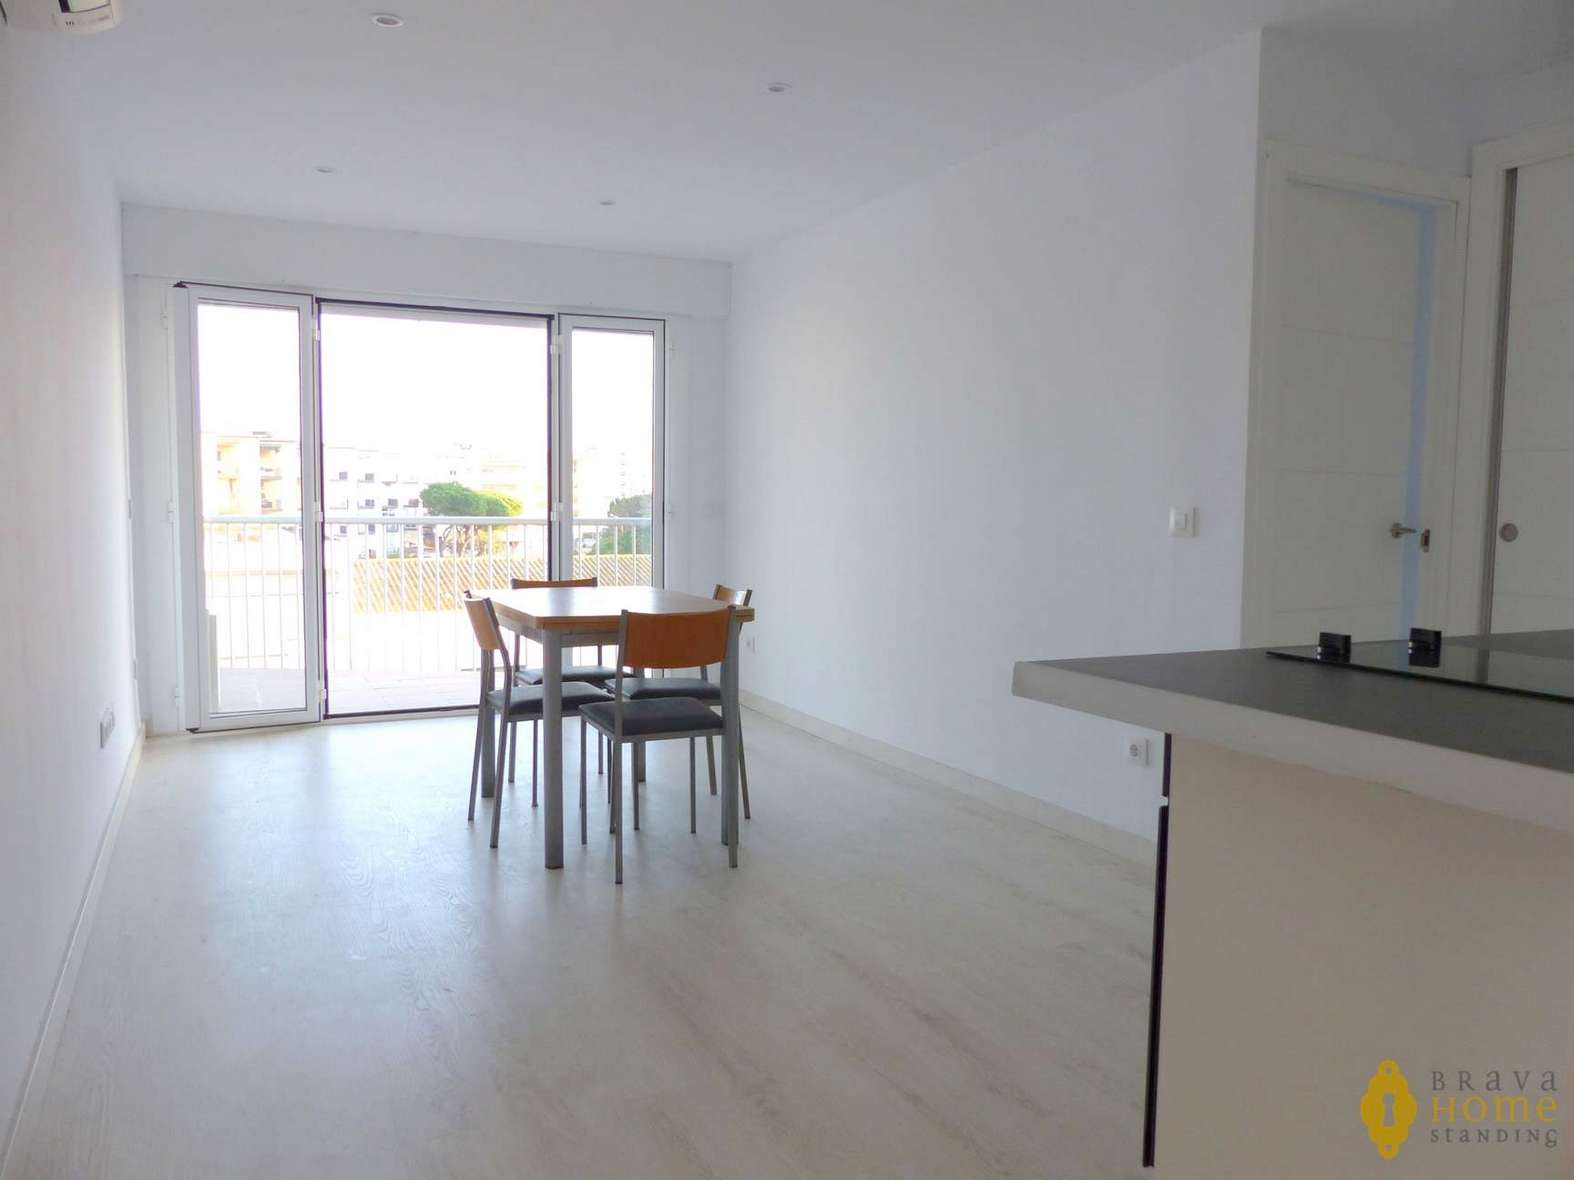 Renovated apartment with view over the canal for sale in Santa Margarita